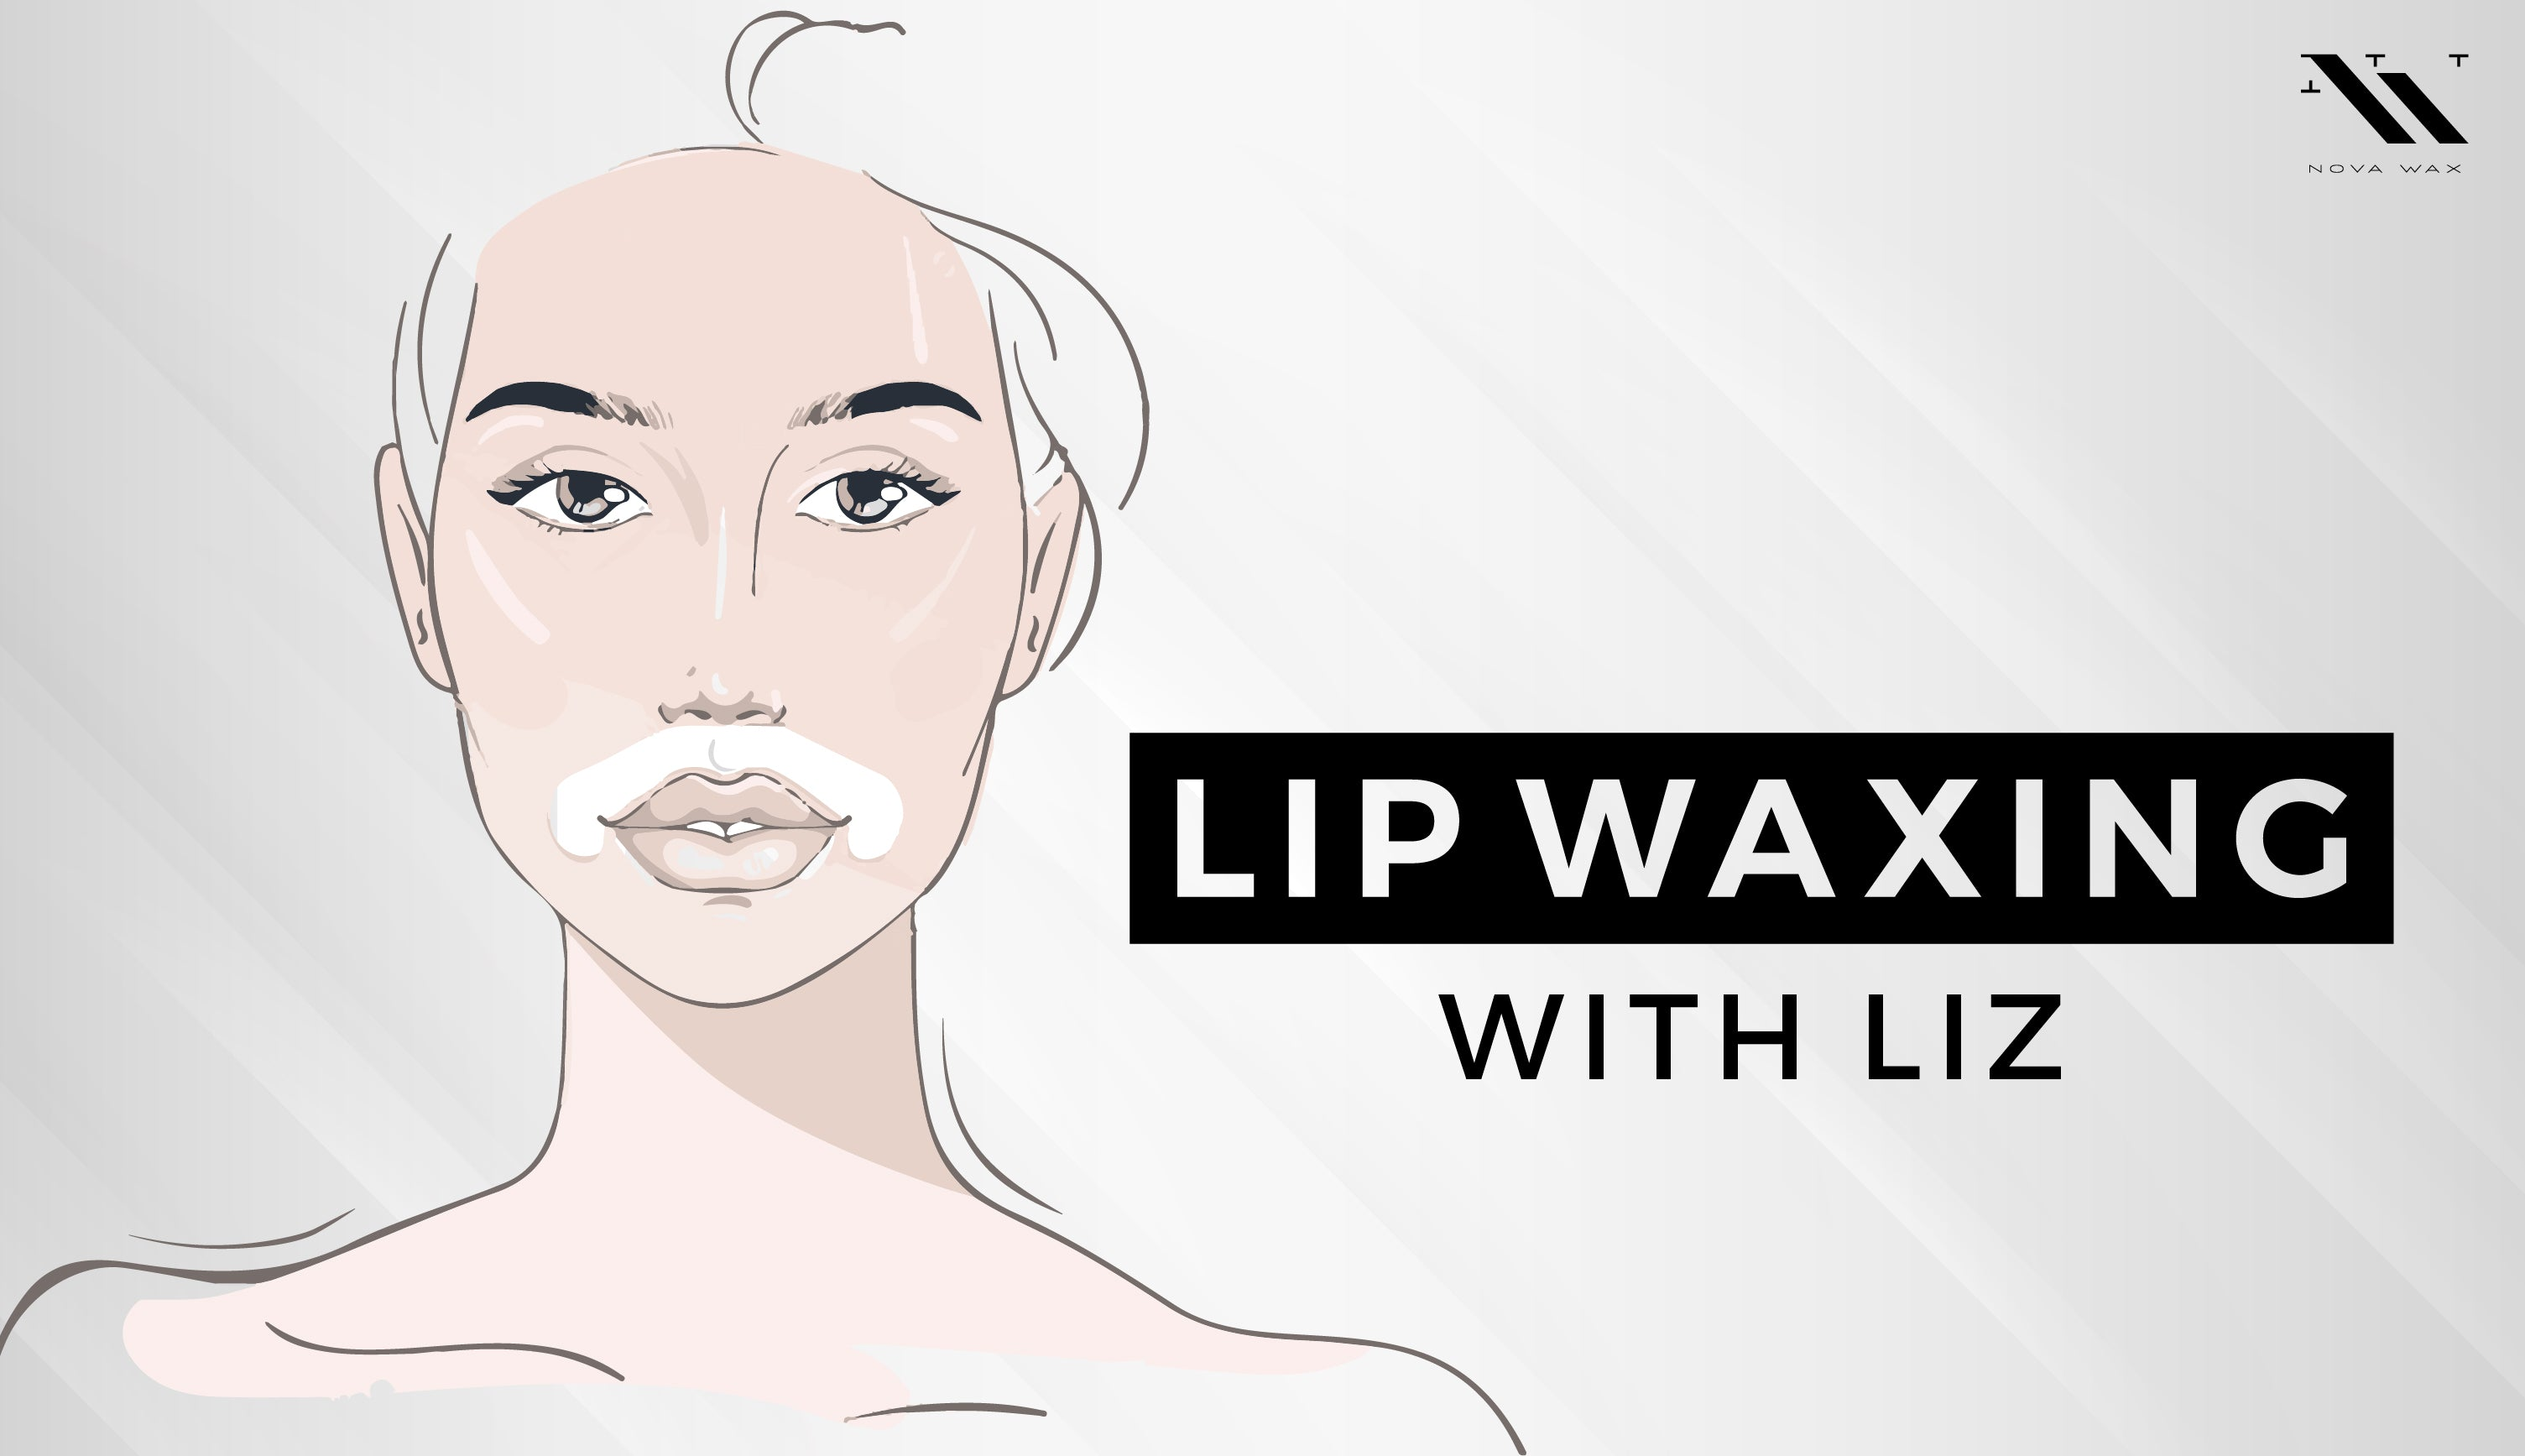 Waxing with Liz: How to Wax Your Upper and Lower Lip